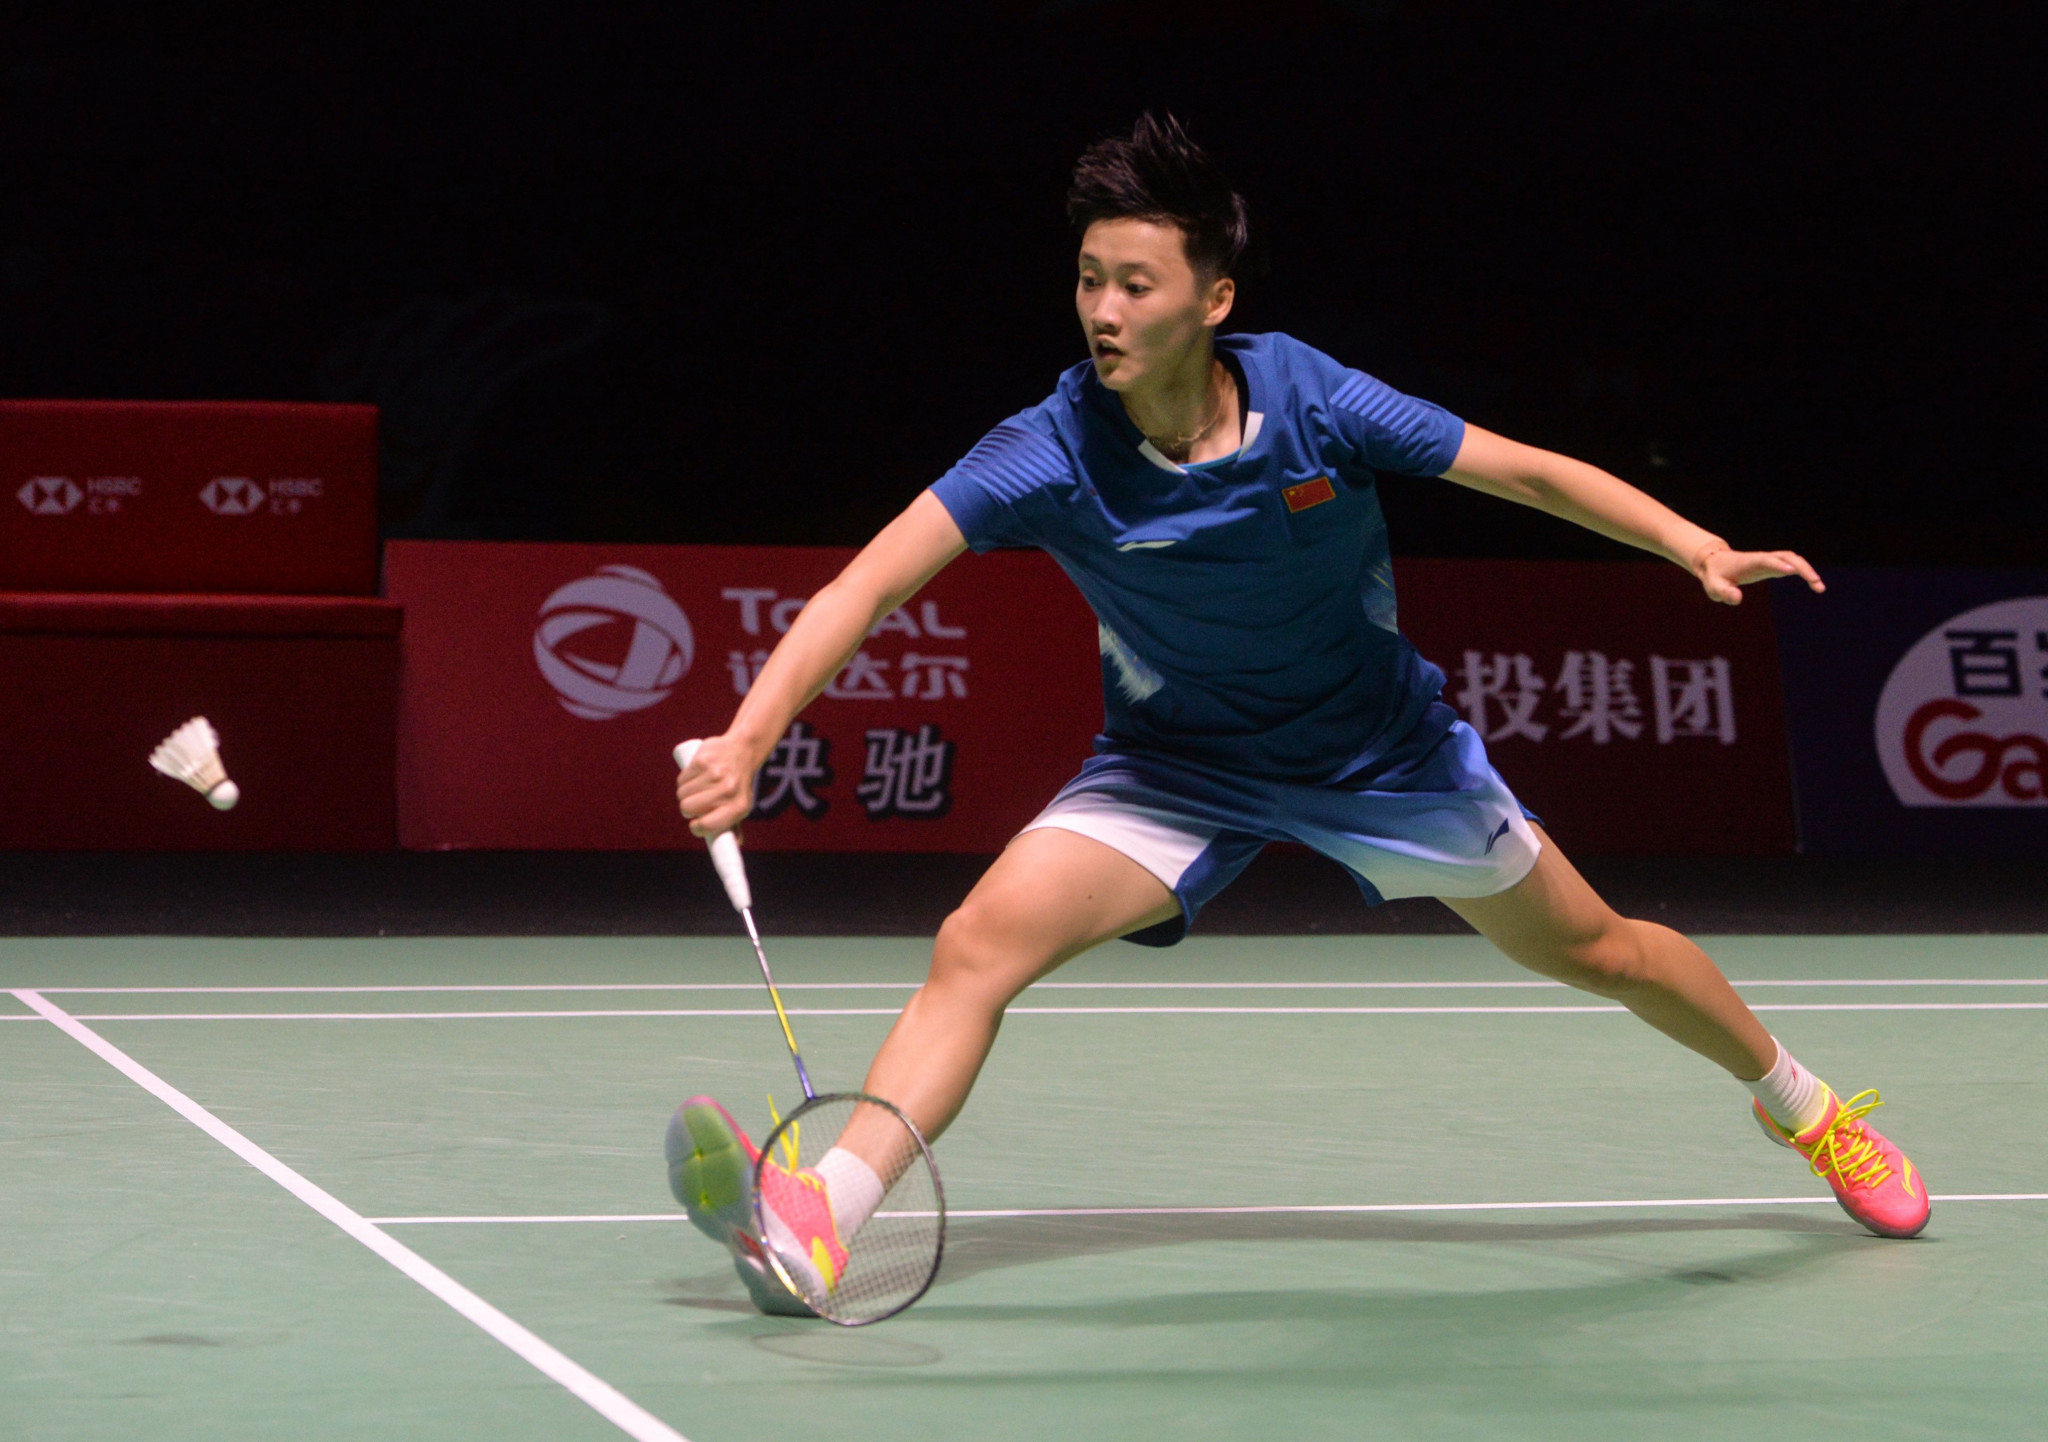 China's Chen Yufei ended the run of Carolina Marin ©Getty Images